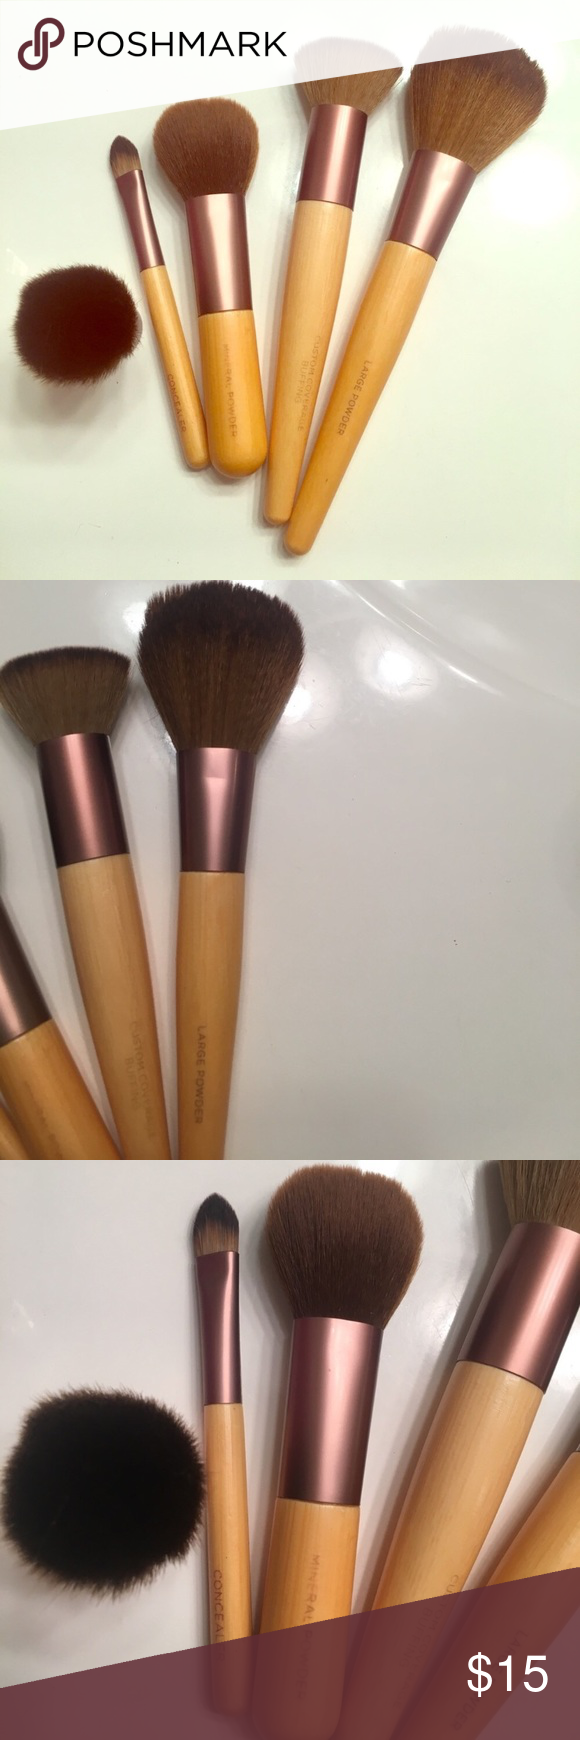 Eco Tools Face Brush Set Eco Tools Face Brush Set. Used a